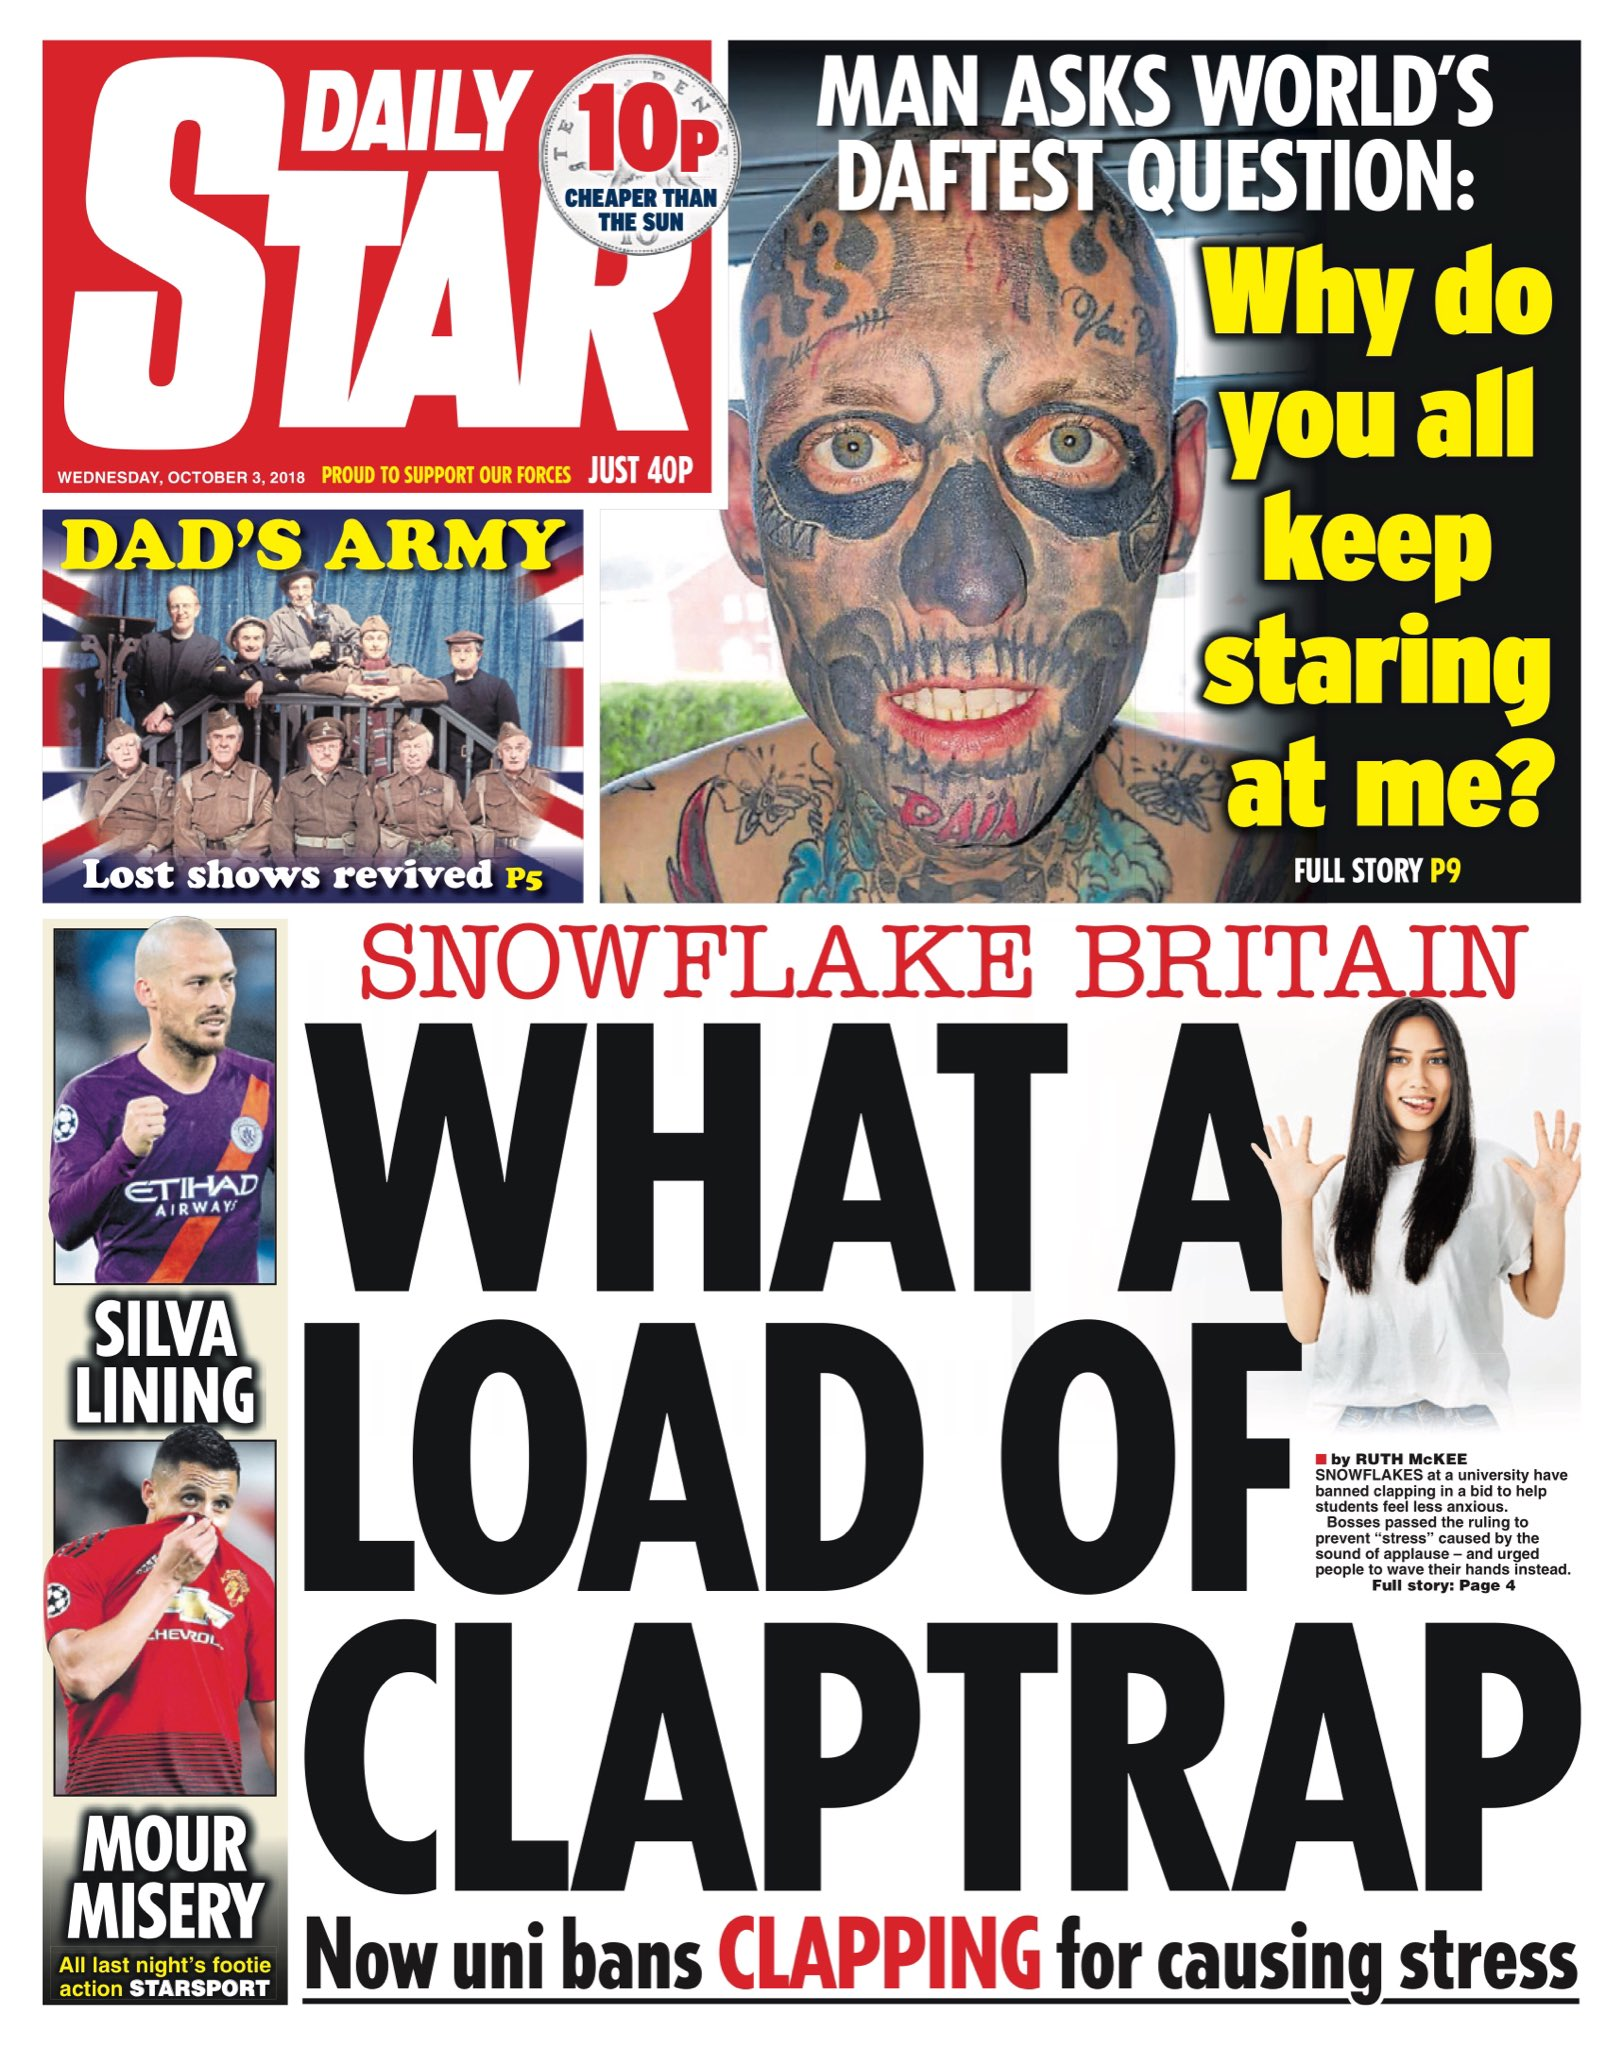 """Wednesday's Daily Star """"What a load of claptrap""""  #tomorrowspaperstoday #bbcpapers (via @AllieHBNews) https://t.co/Z1ZGsZ4ZLs"""